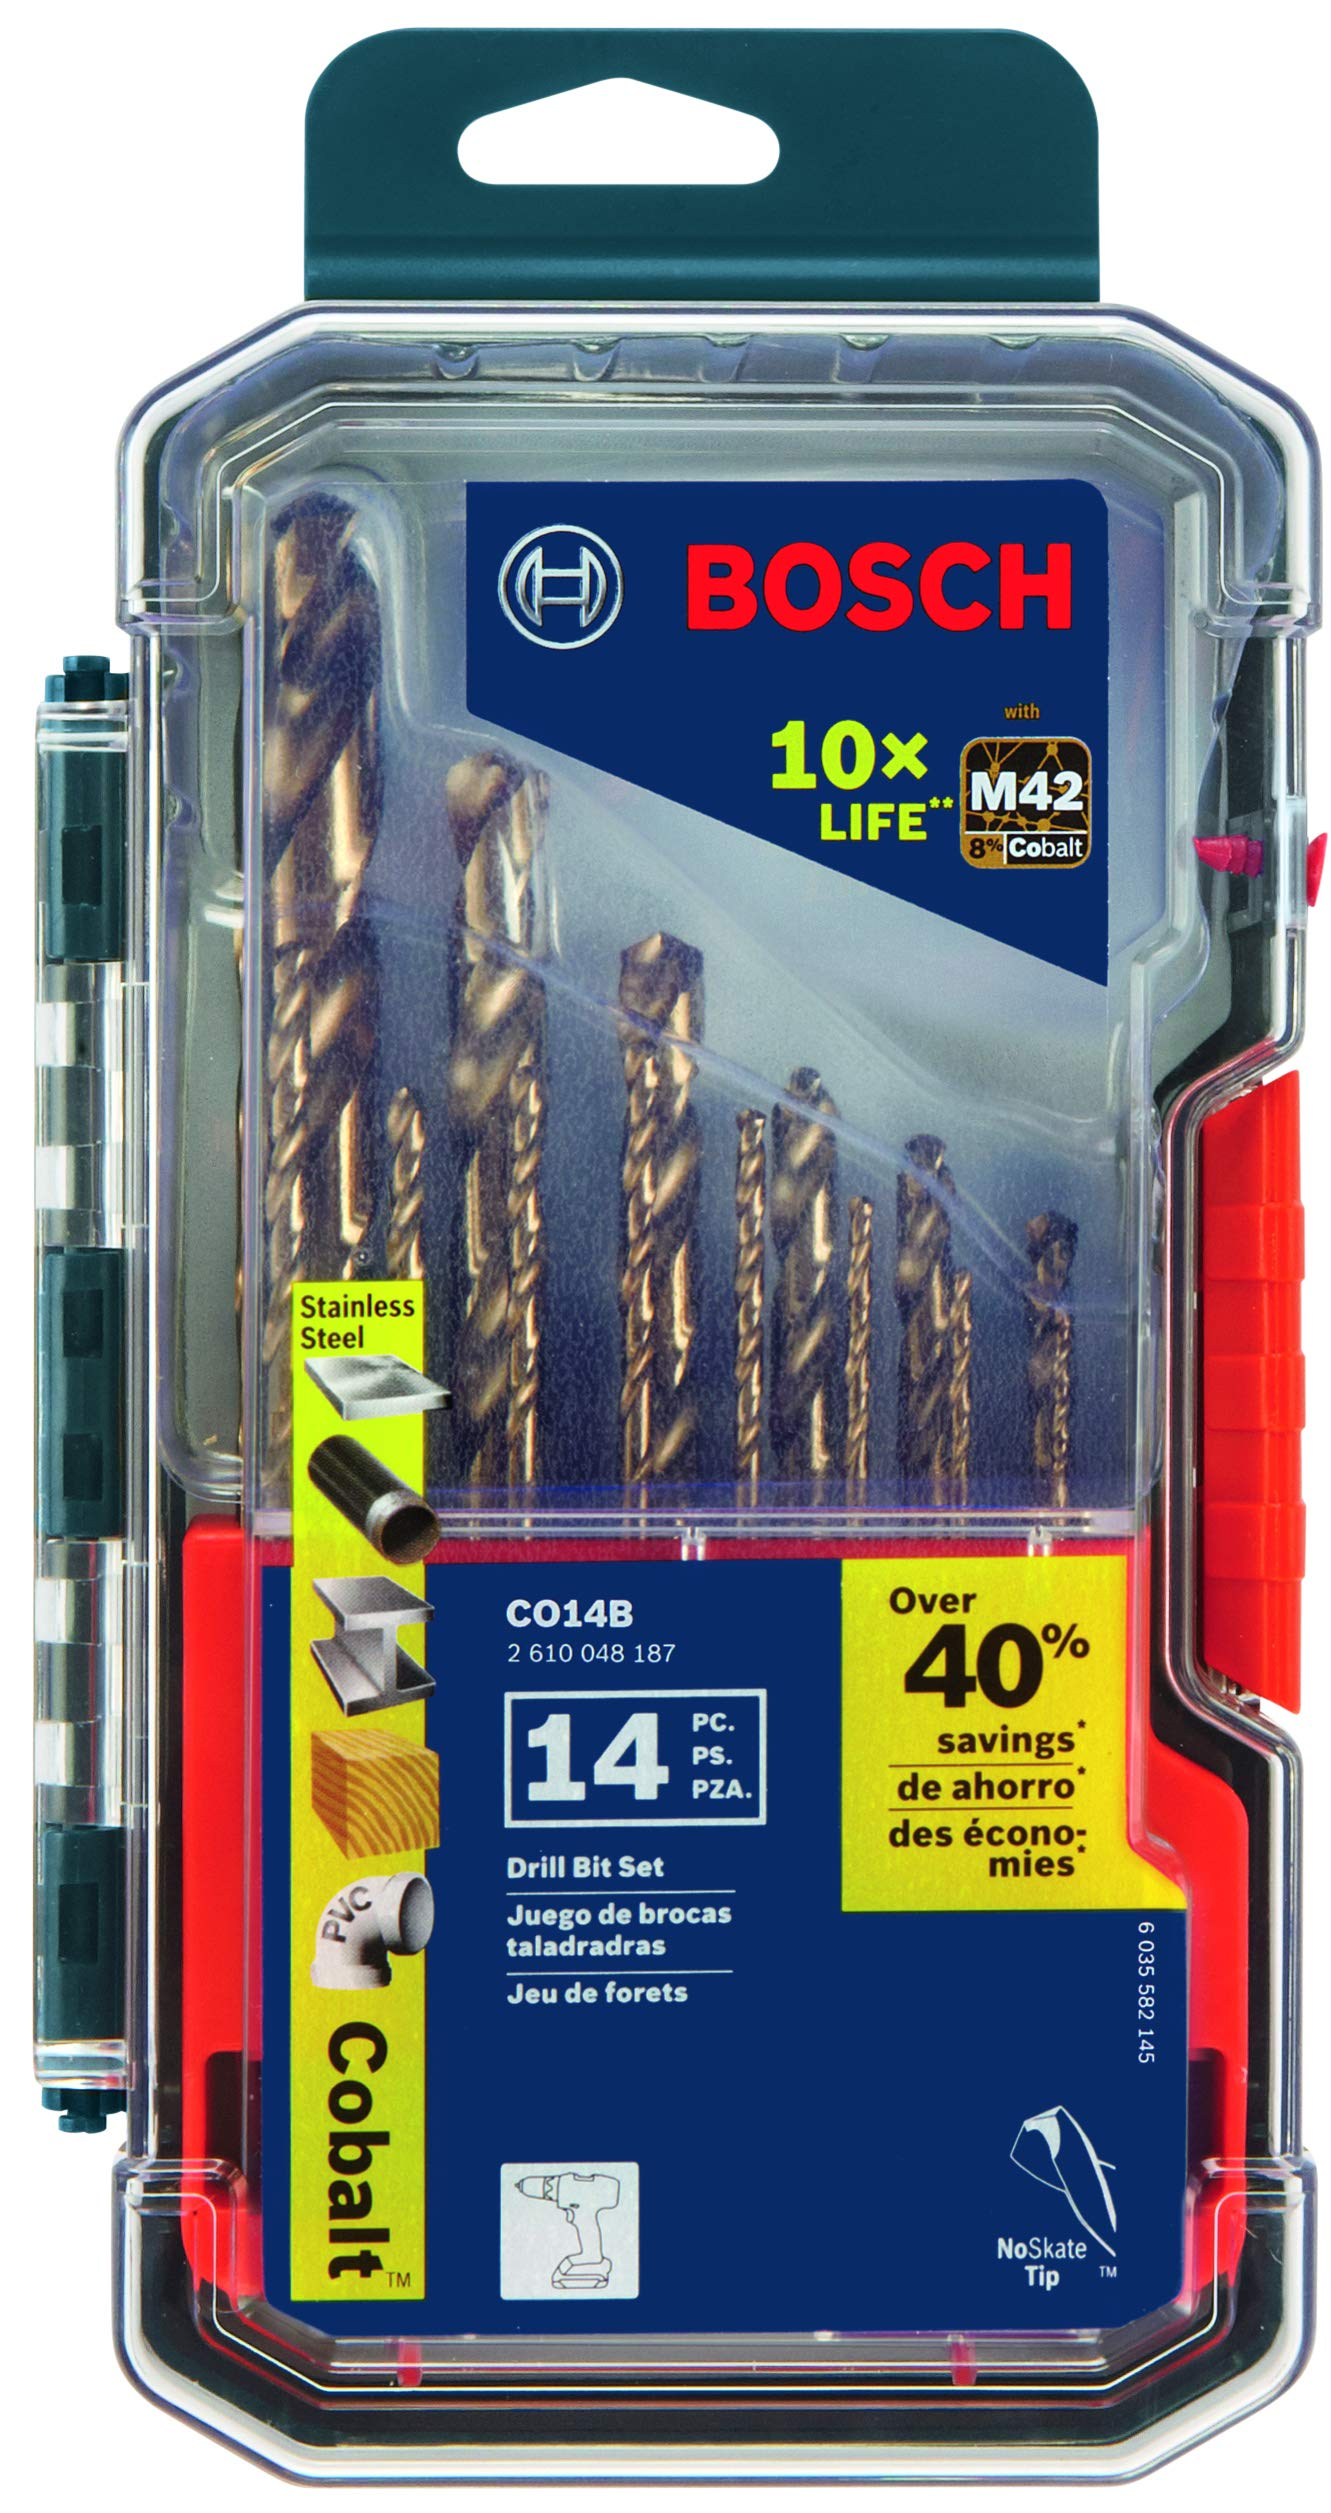 Bosch CO14B 14 Pc. Cobalt M42 Drill Bit Set by Bosch